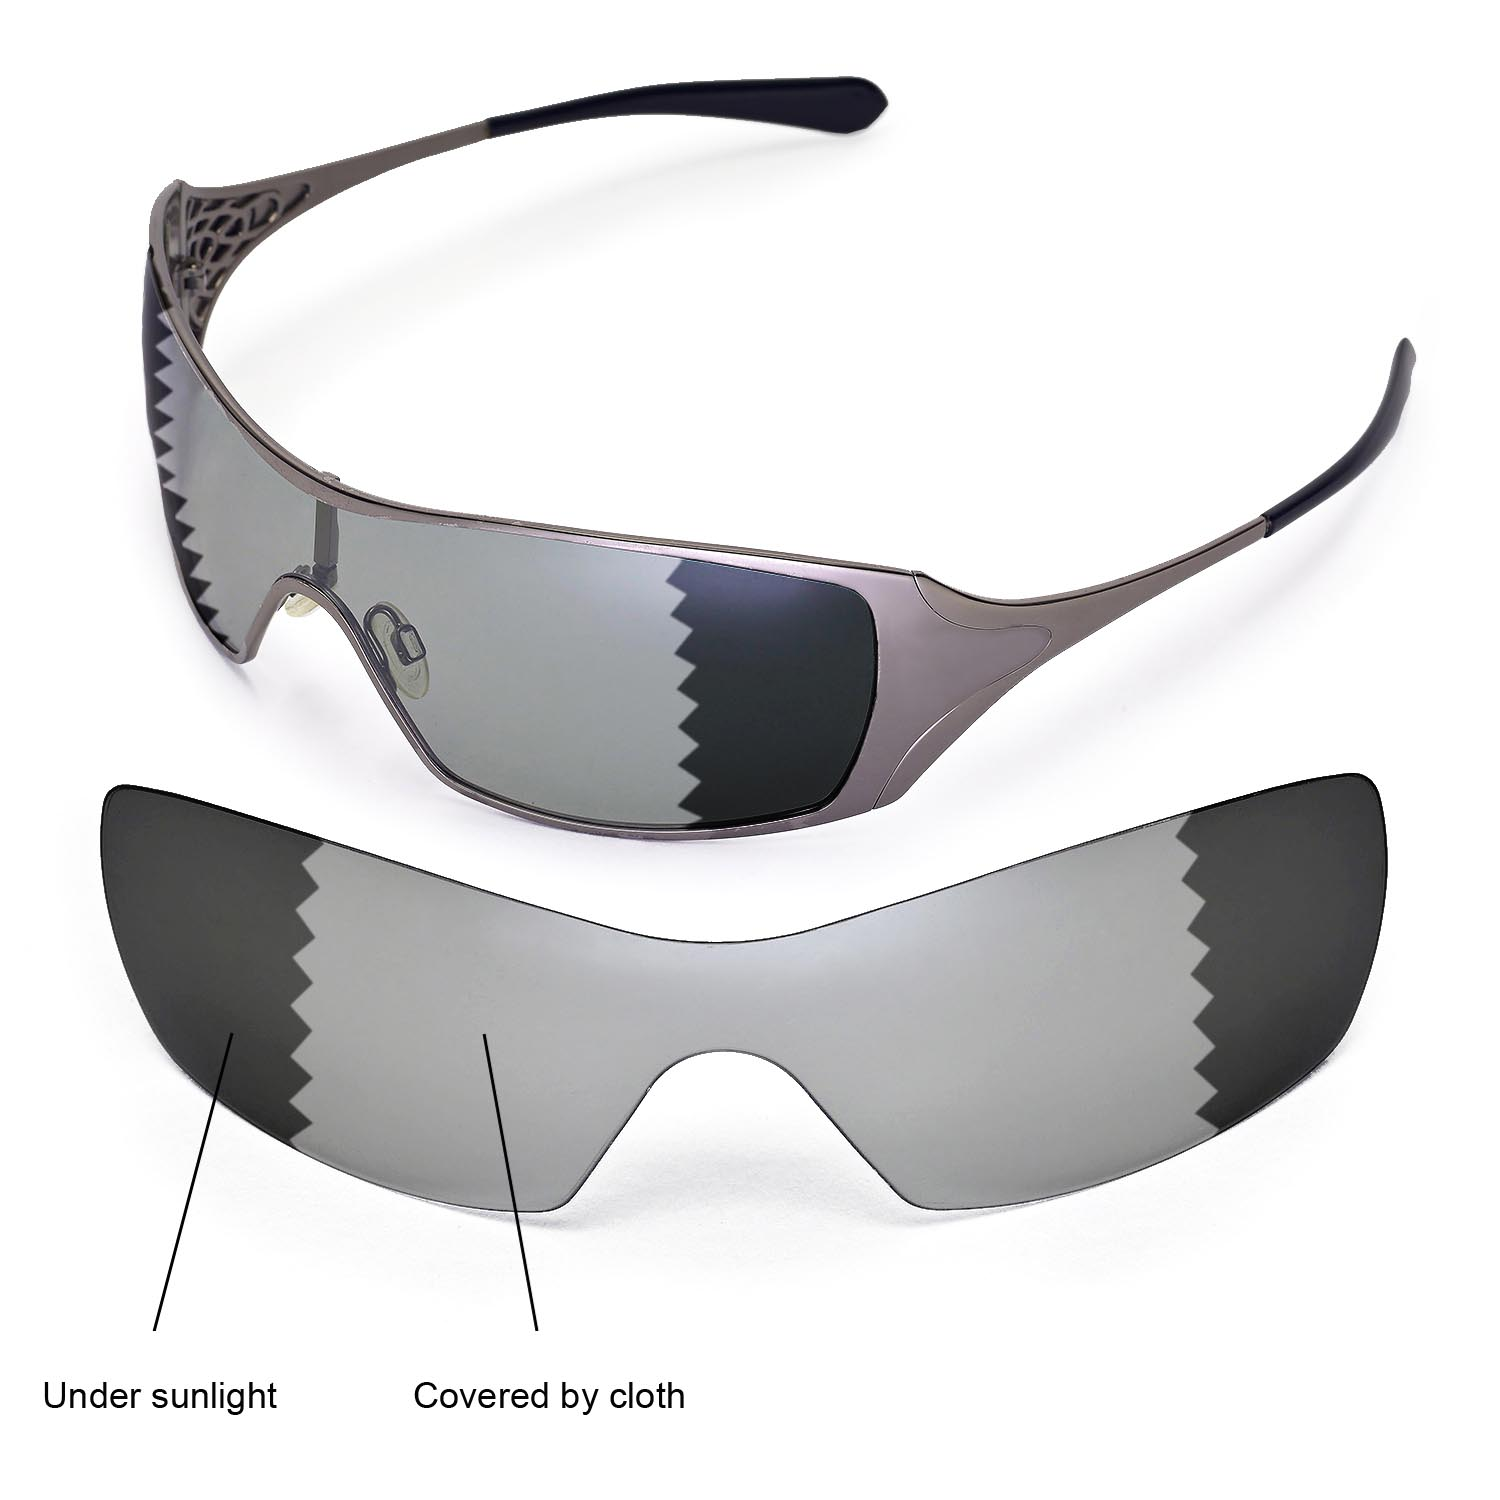 b673c94838 Details about Walleva Polarized Transition Photochromic Replacement Lenses  For Oakley Dart